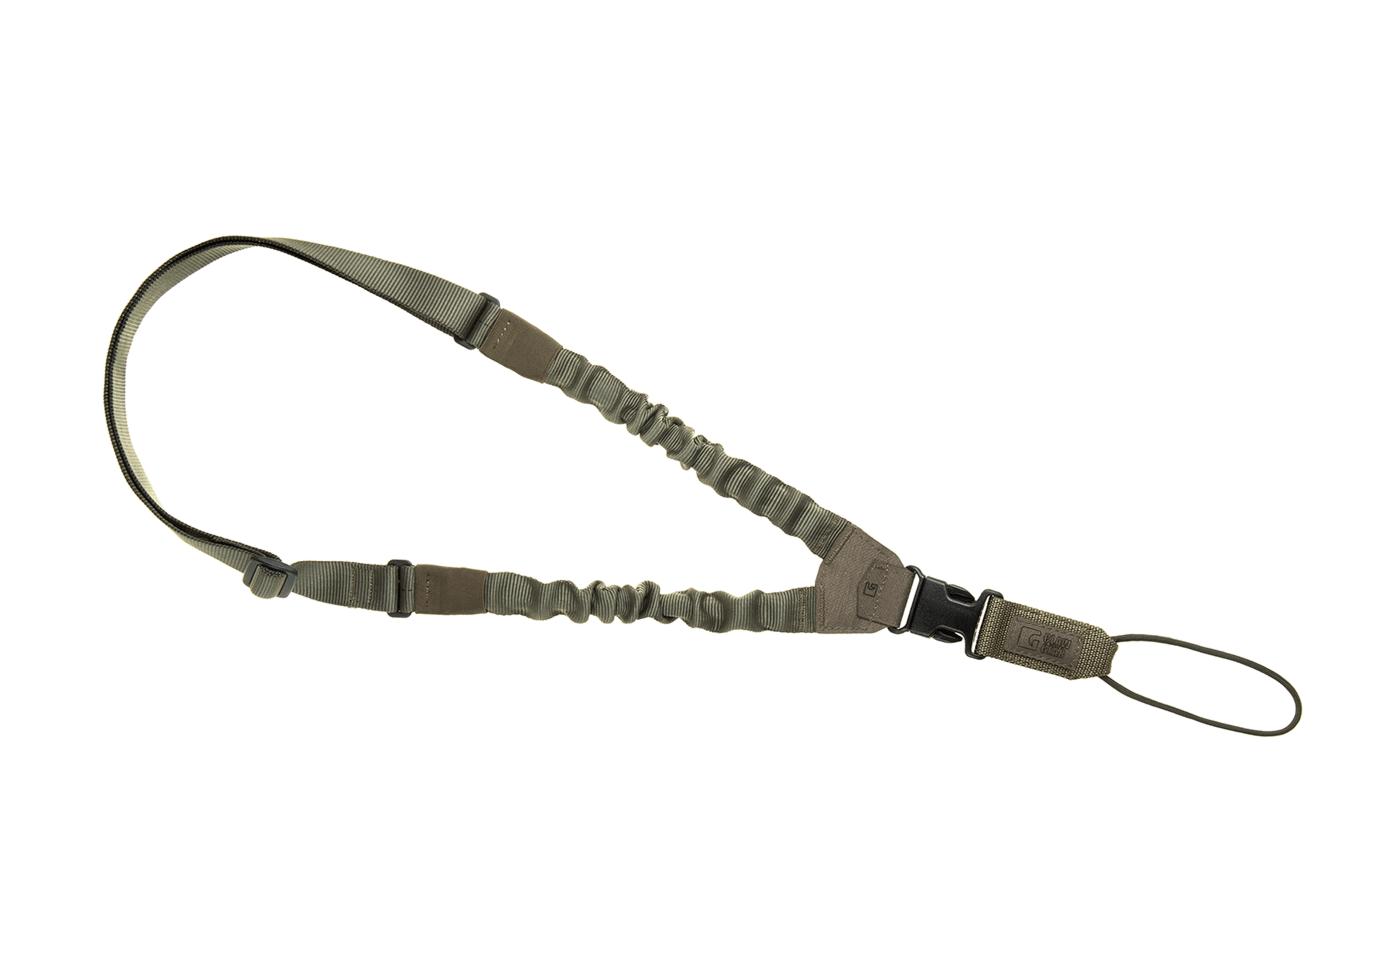 https://www.softgun.ch/shop/bilder/REALSTEEL/CLAWGEAR/CLAWGEAR-ONE-POINT-SLING-PARACORD-RAL7013_01.png